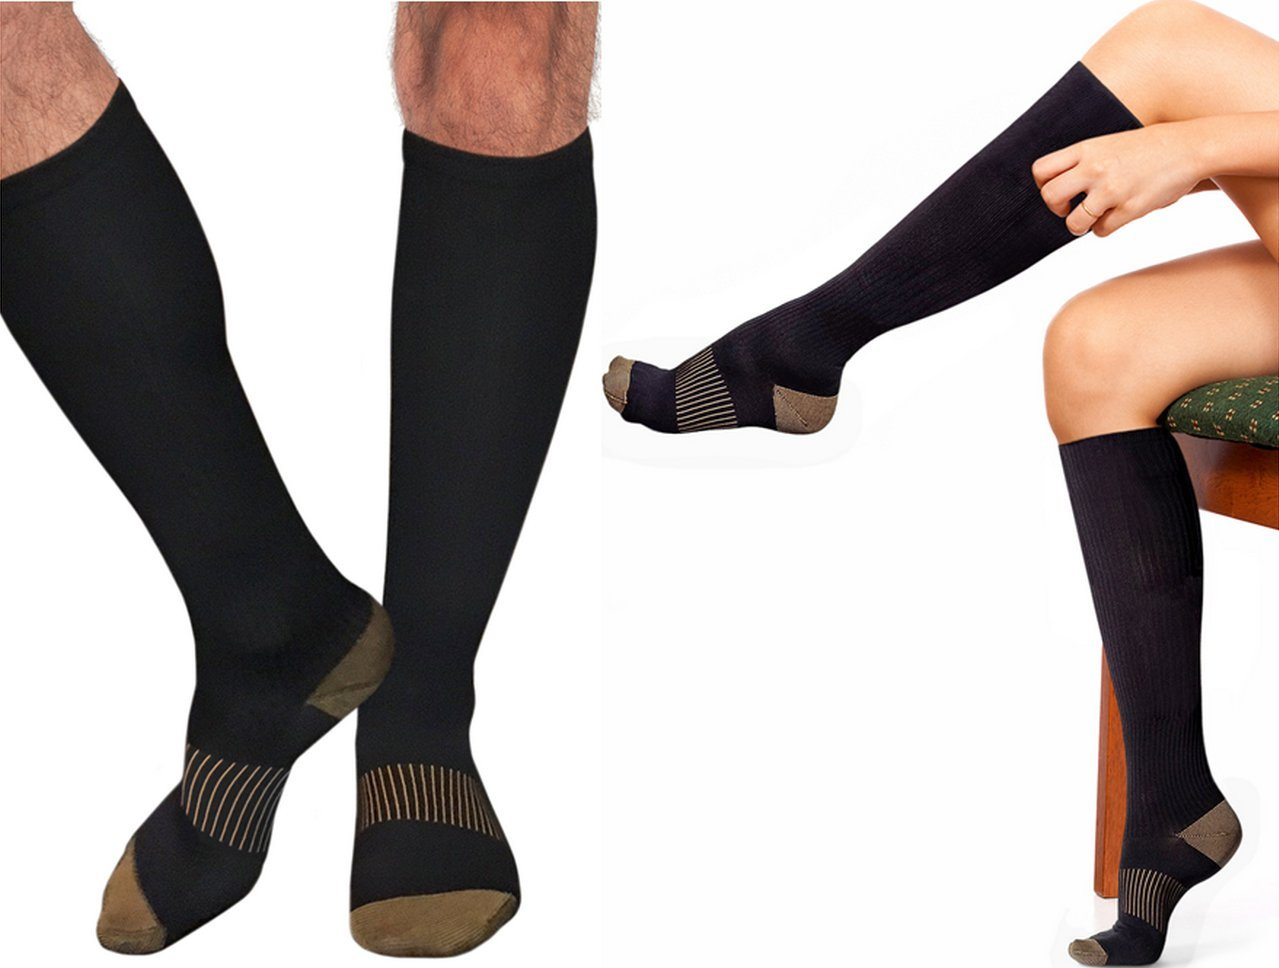 Copper Compression Gear PREMIUM Knee High Socks - 100% GUARANTEED - #1 Copper Recovery Support Socks for Calf or Shin Splints, Swollen Feet, Running/Support Stabilizer For Men And Women(Size 7-9)